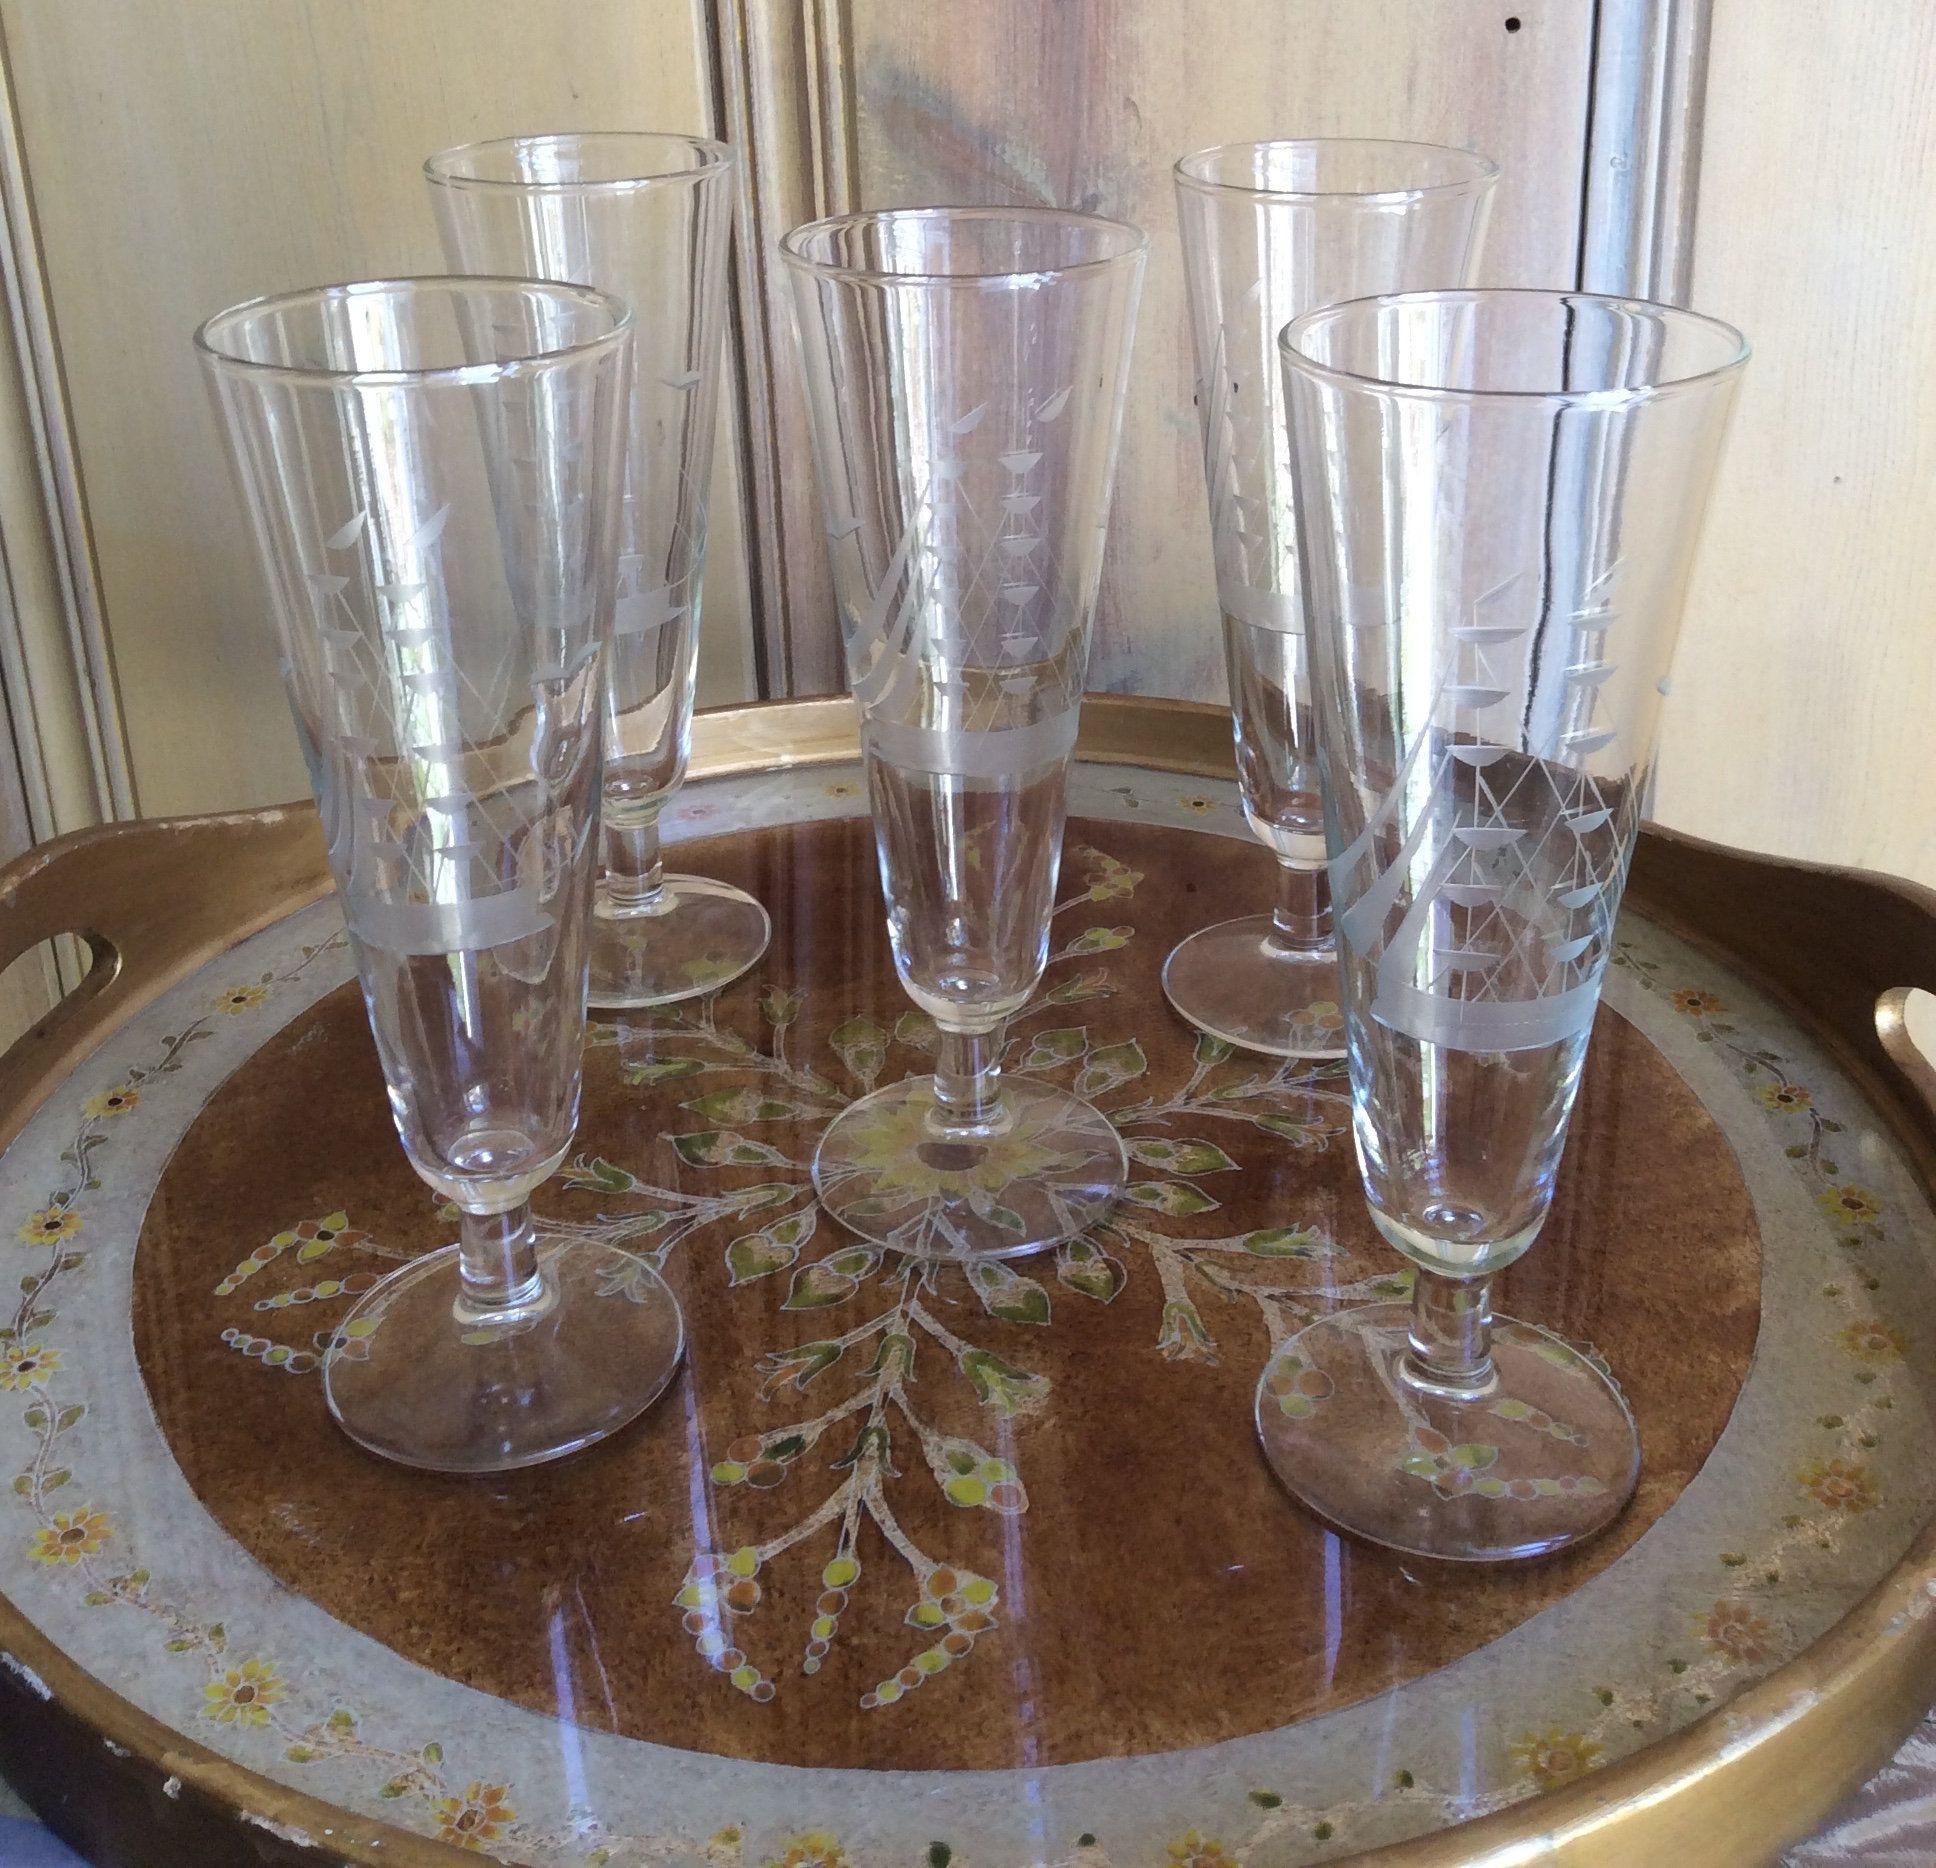 Footed Crystal Vase Of Set Of Five Etched Ship Glass Tall Beer Glass Footed Glassware with Regard to Glass